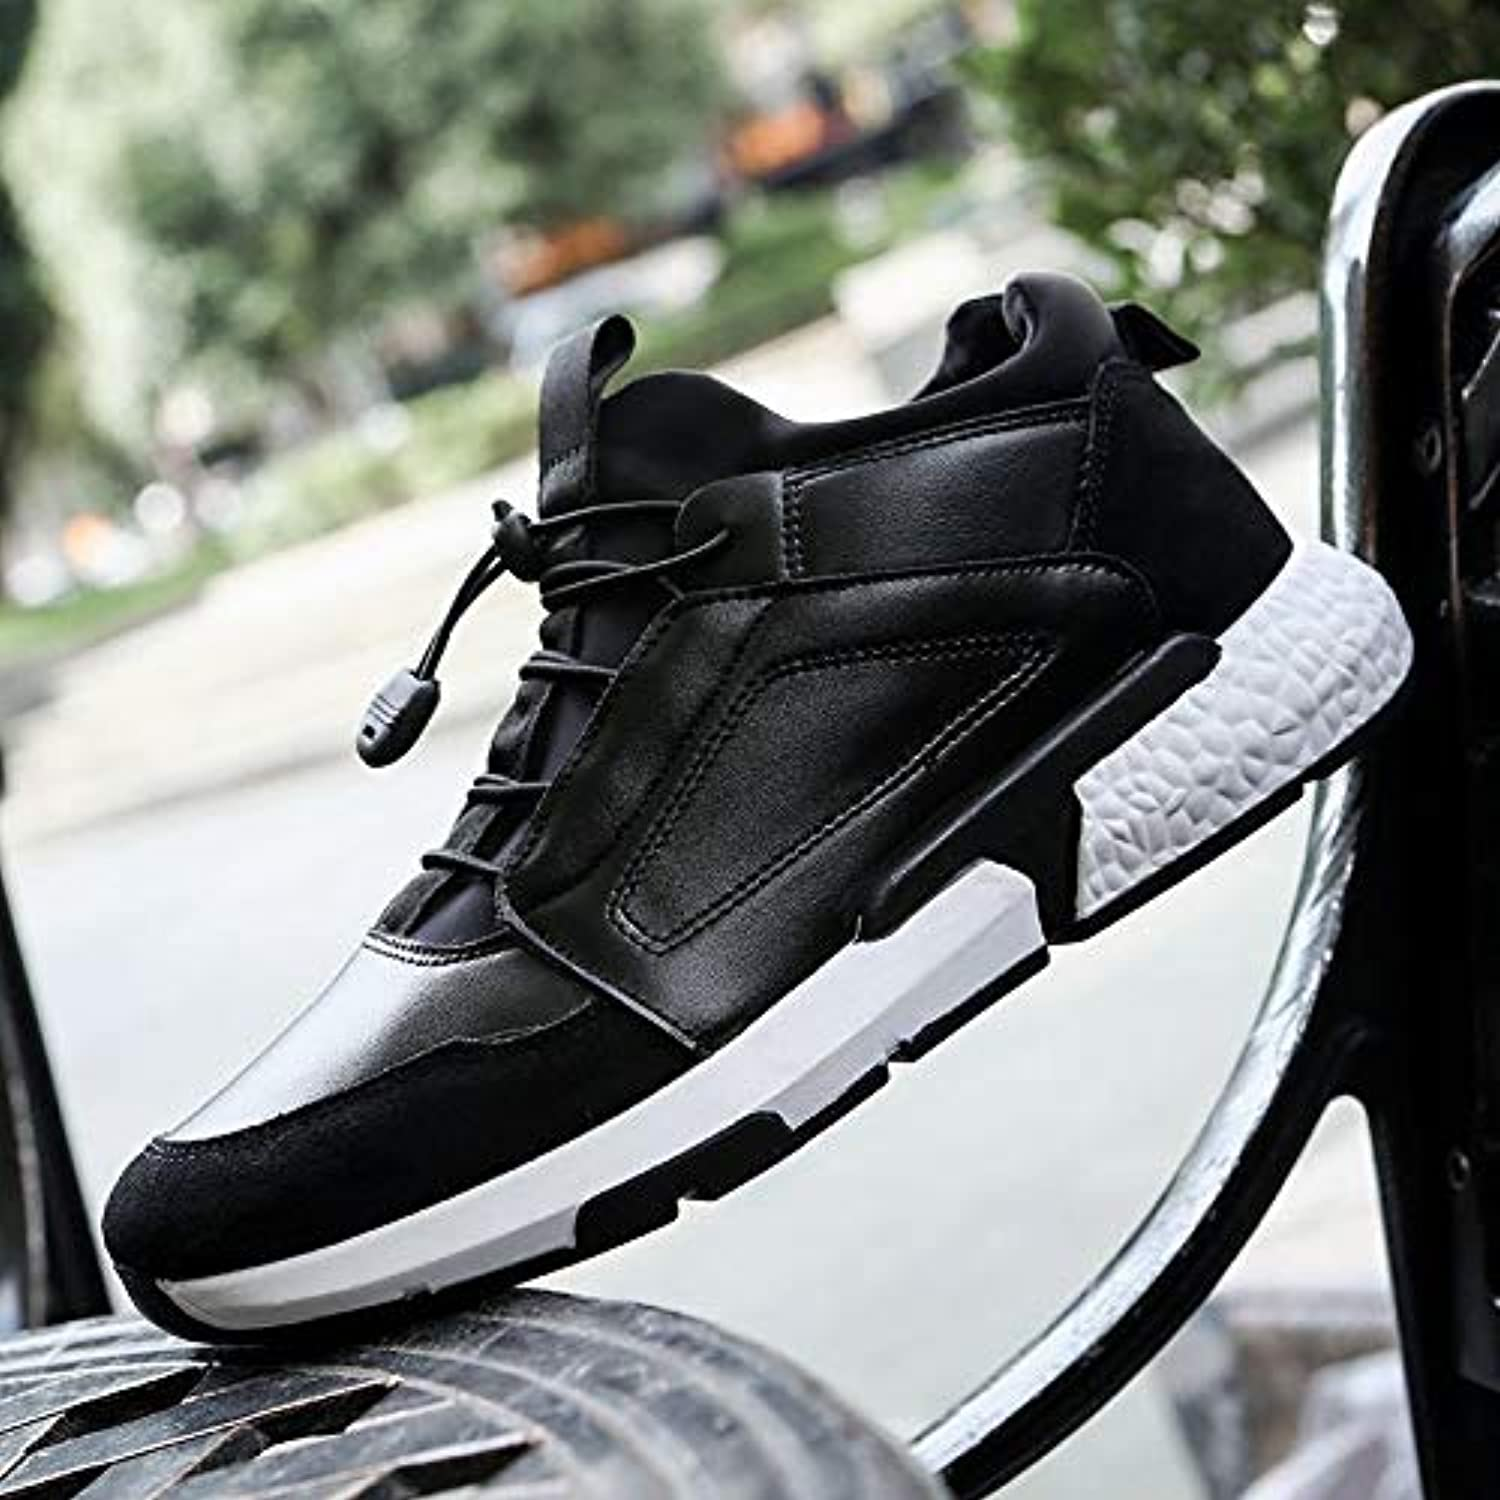 LOVDRAM Men'S shoes Autumn New Men'S Casual shoes